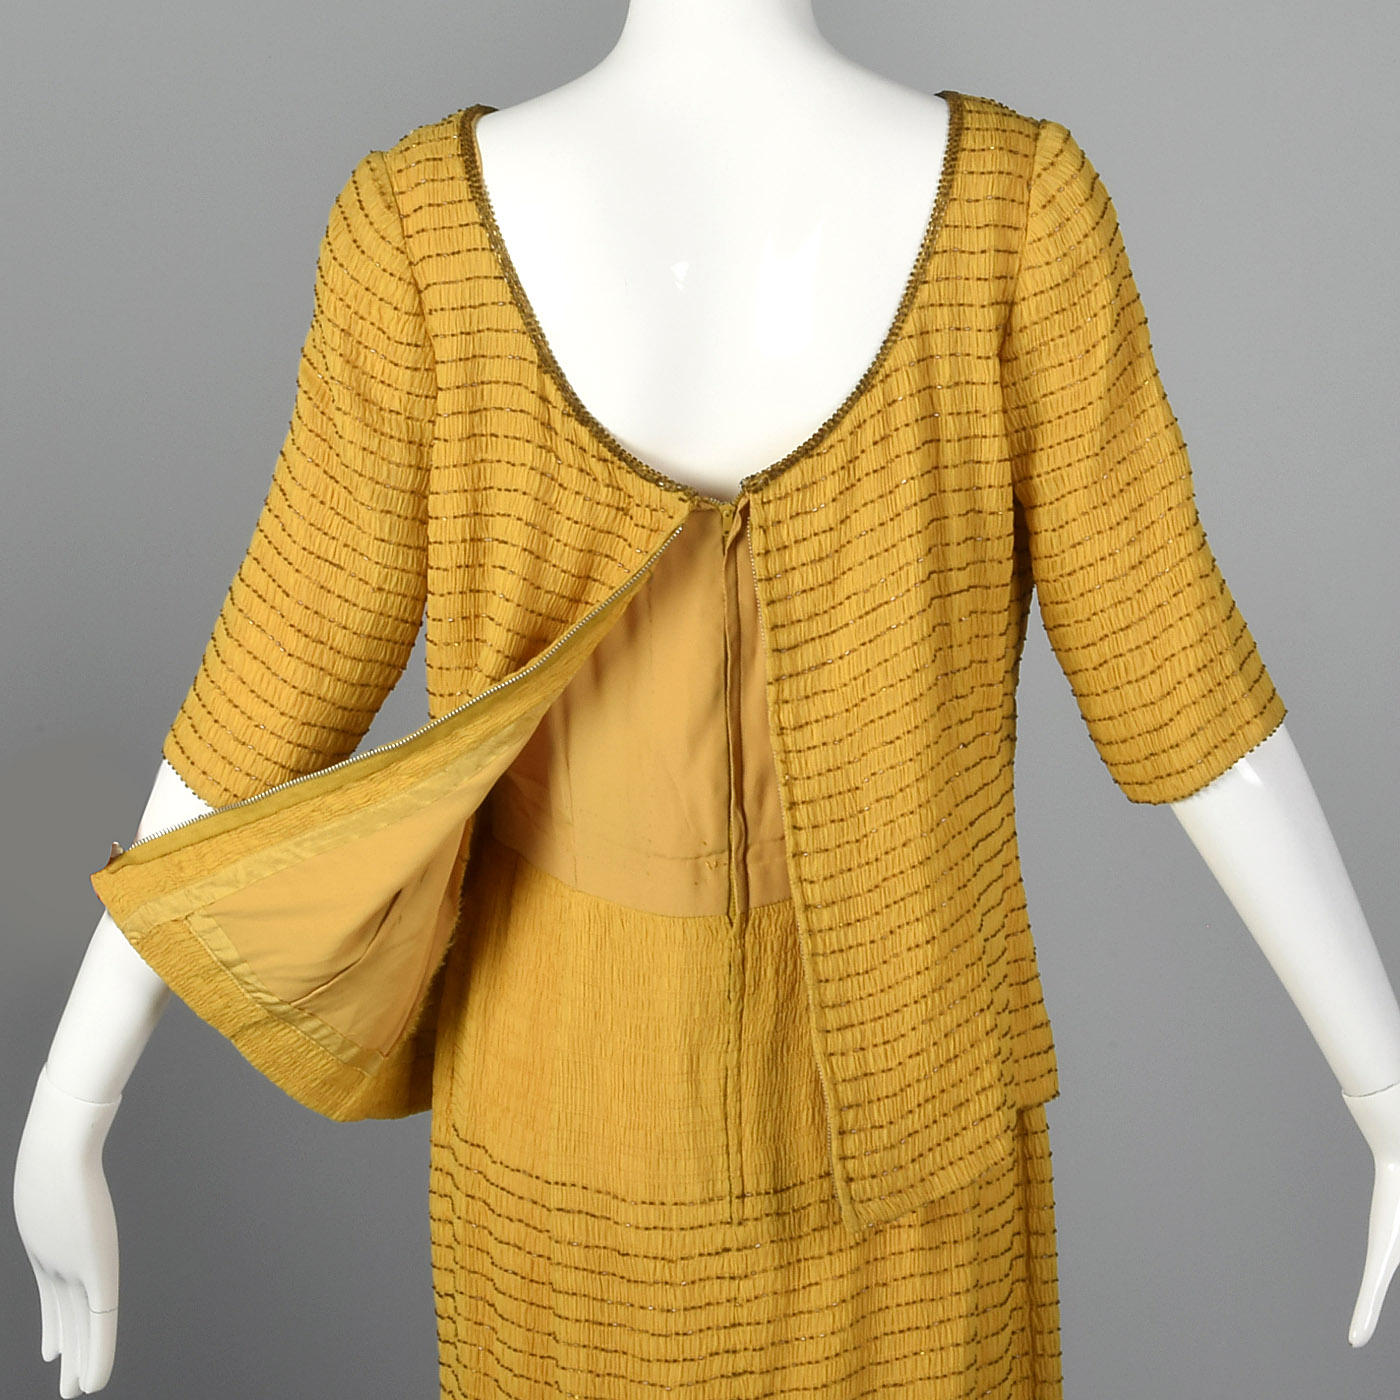 1960s Yellow Silk Dress with Beads